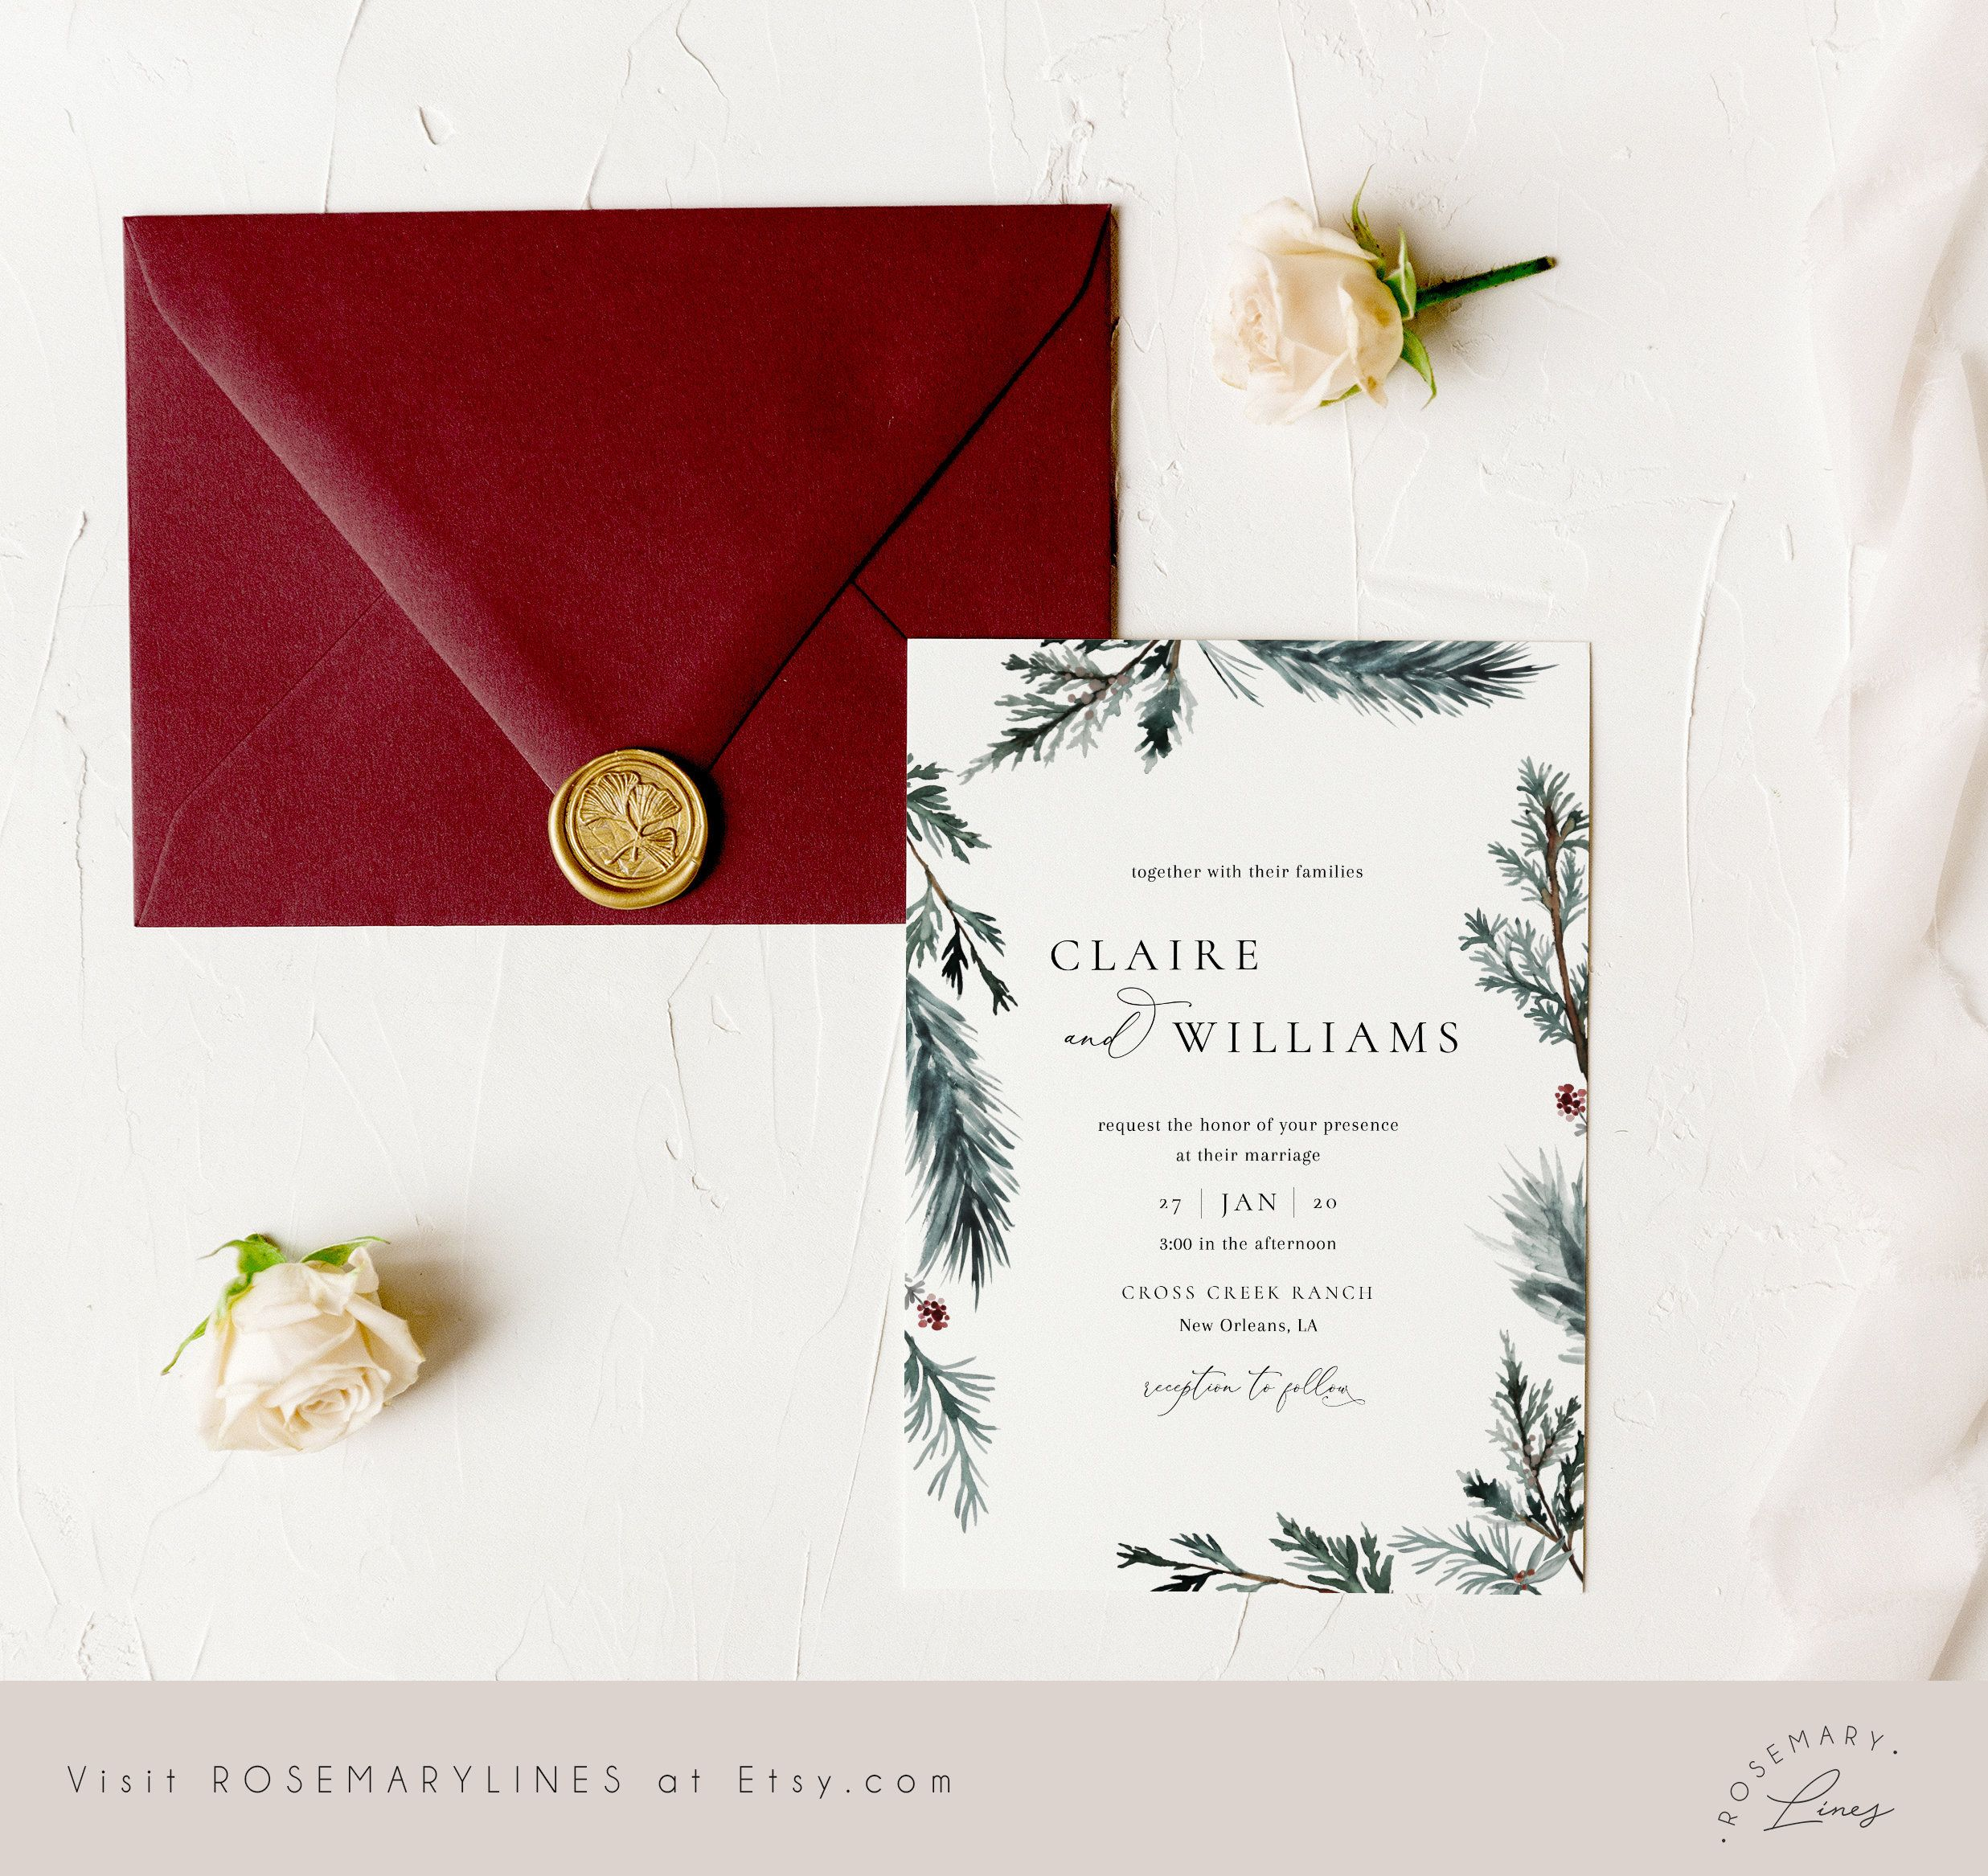 Invitations Vintage Italian Wedding Stationery Set; Invitation and Reply Card Printable US Only Evite or Printed